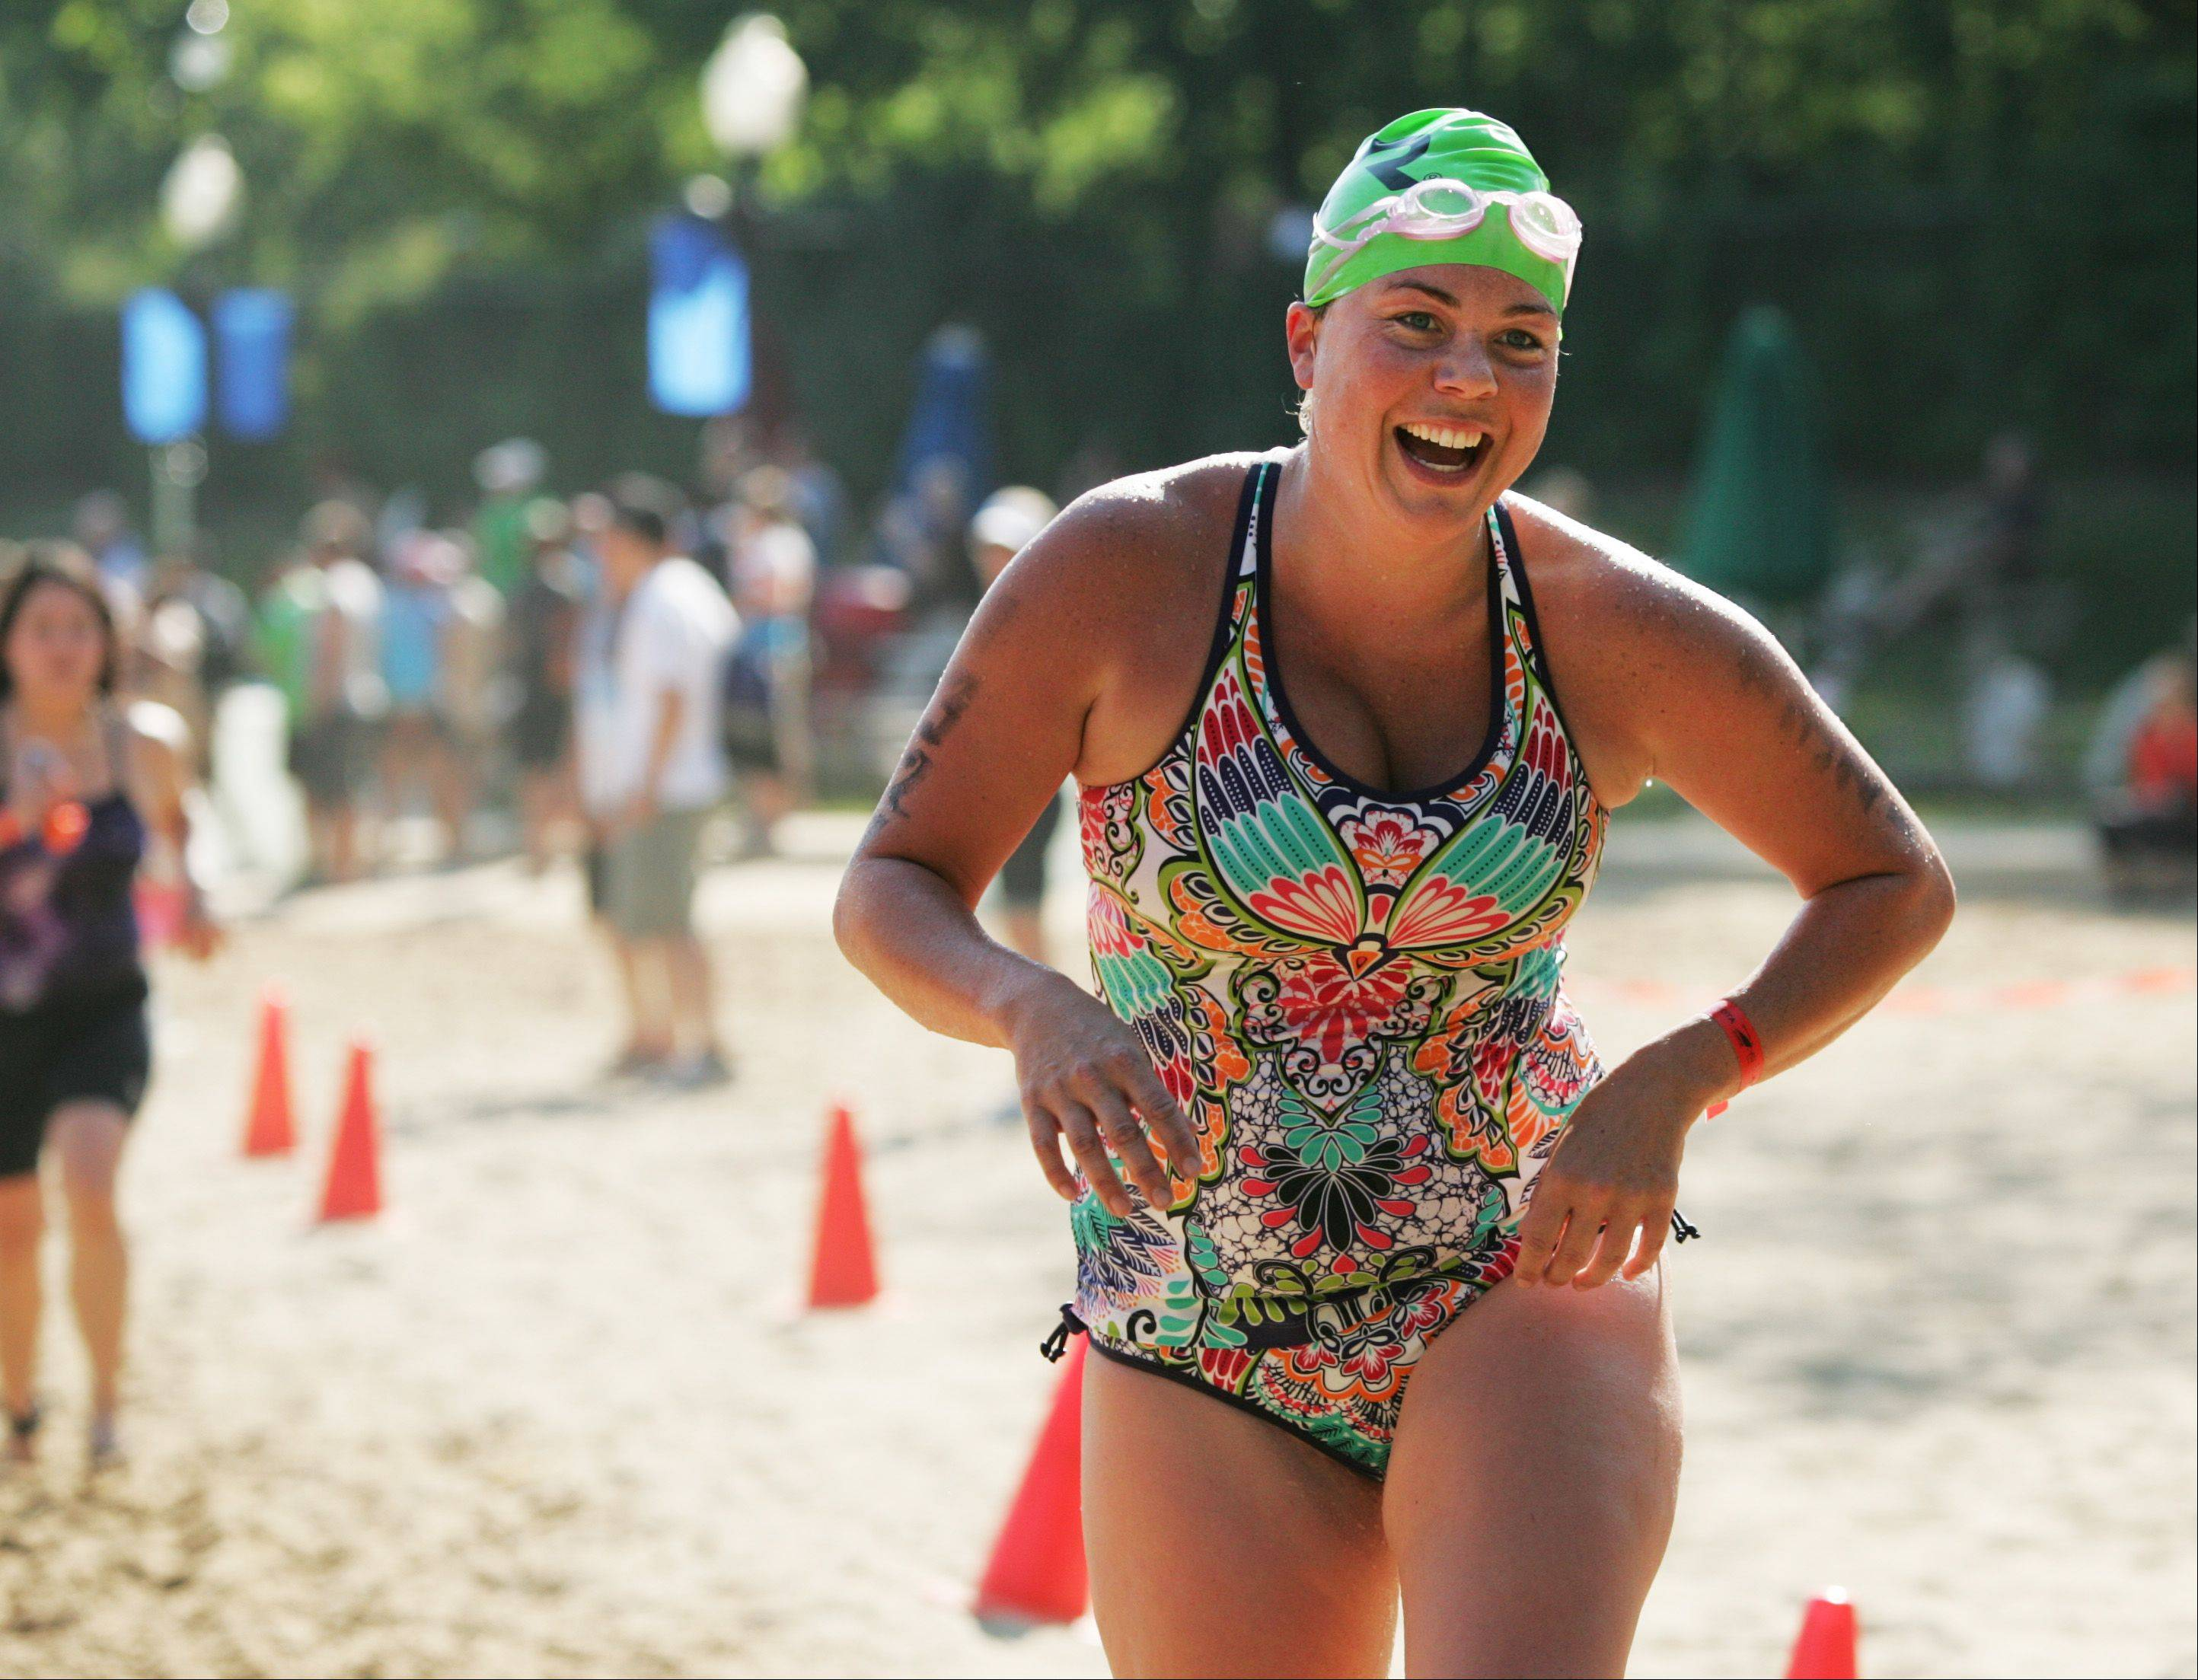 Anne Riordan of St. Charles exits the swimming phase of the first leg of the Naperville Triathlon.